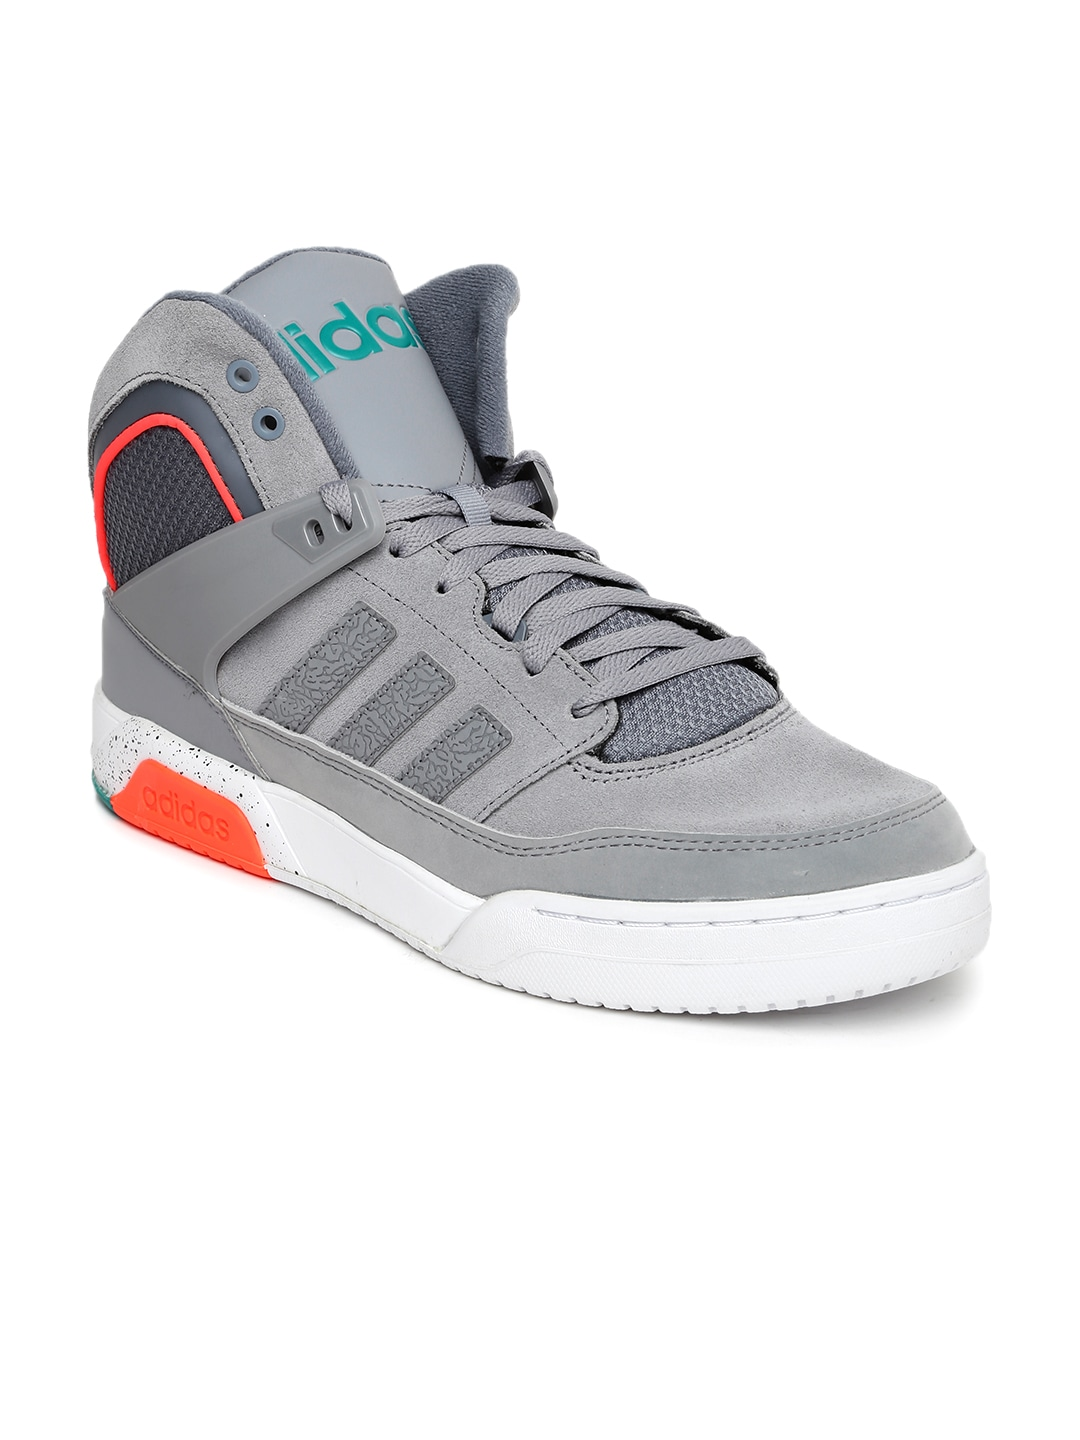 adidas neo mid ankle